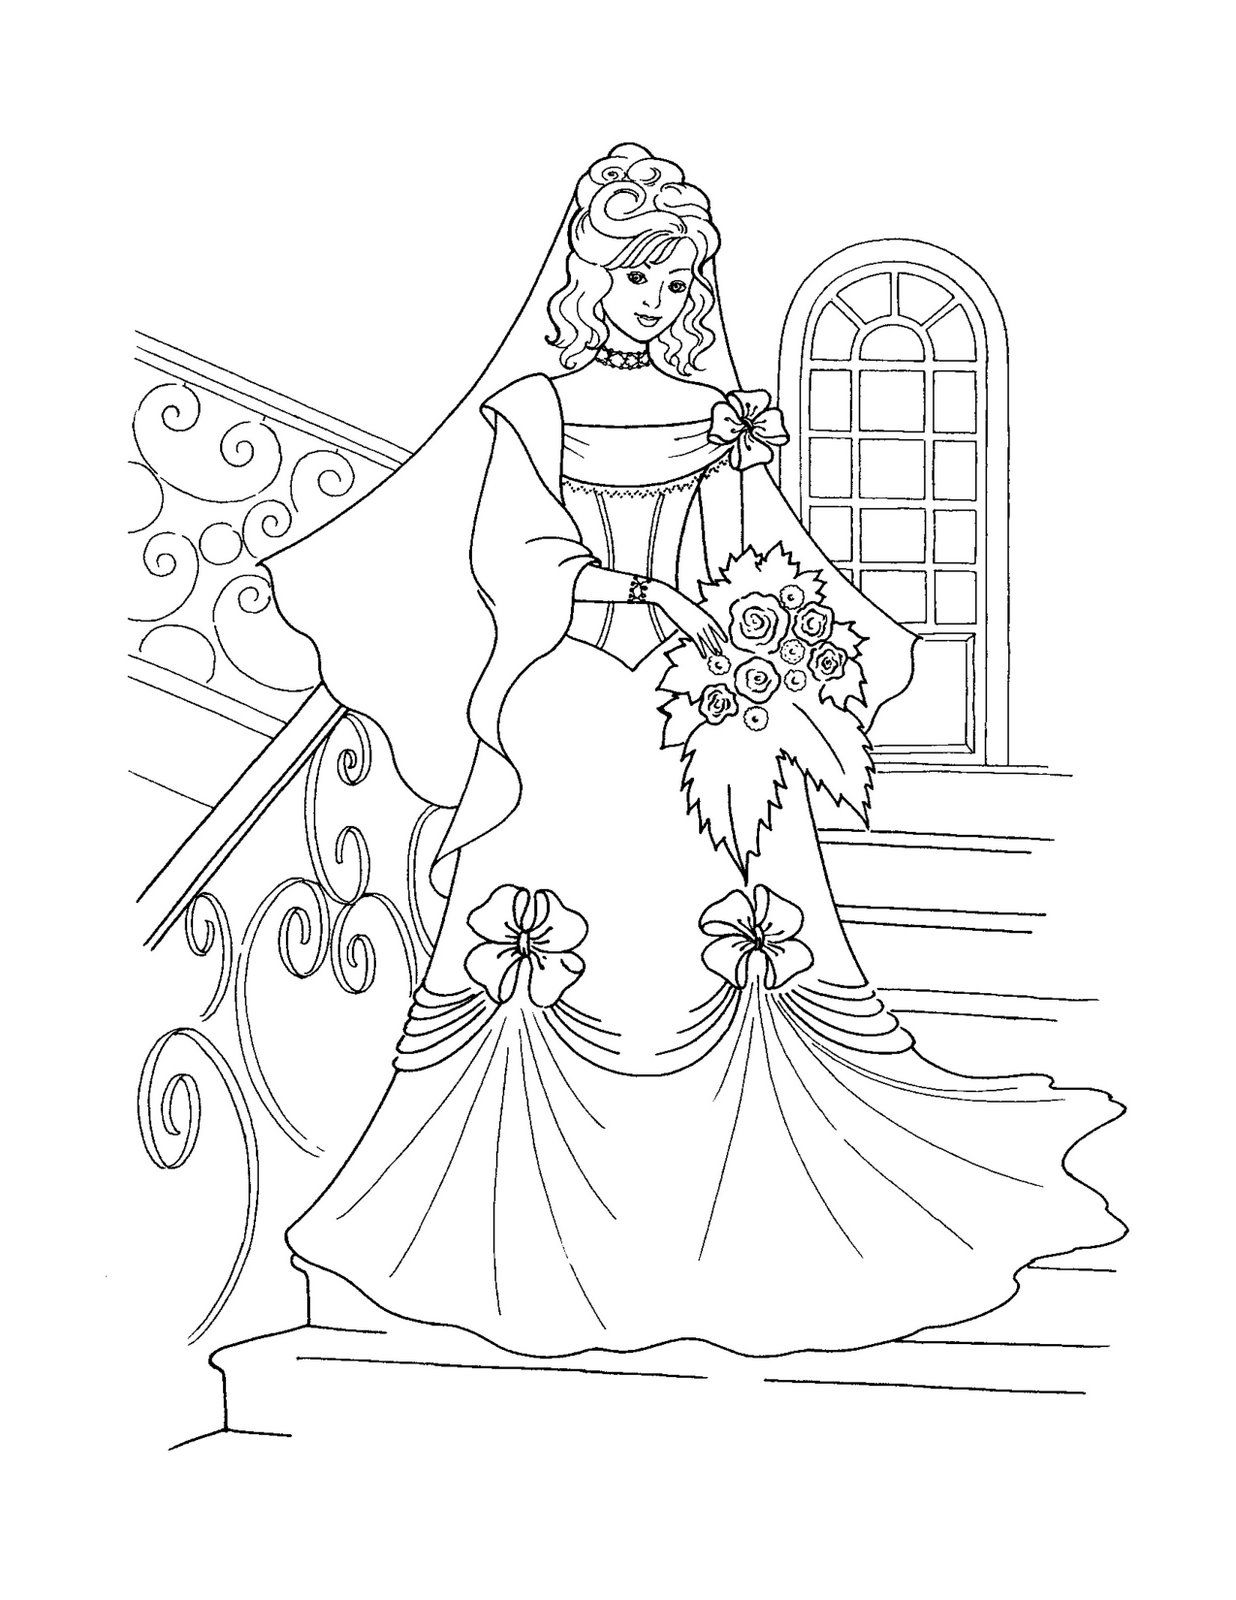 Free printable coloring pages barbie princess - Coloring Pages Of Princess